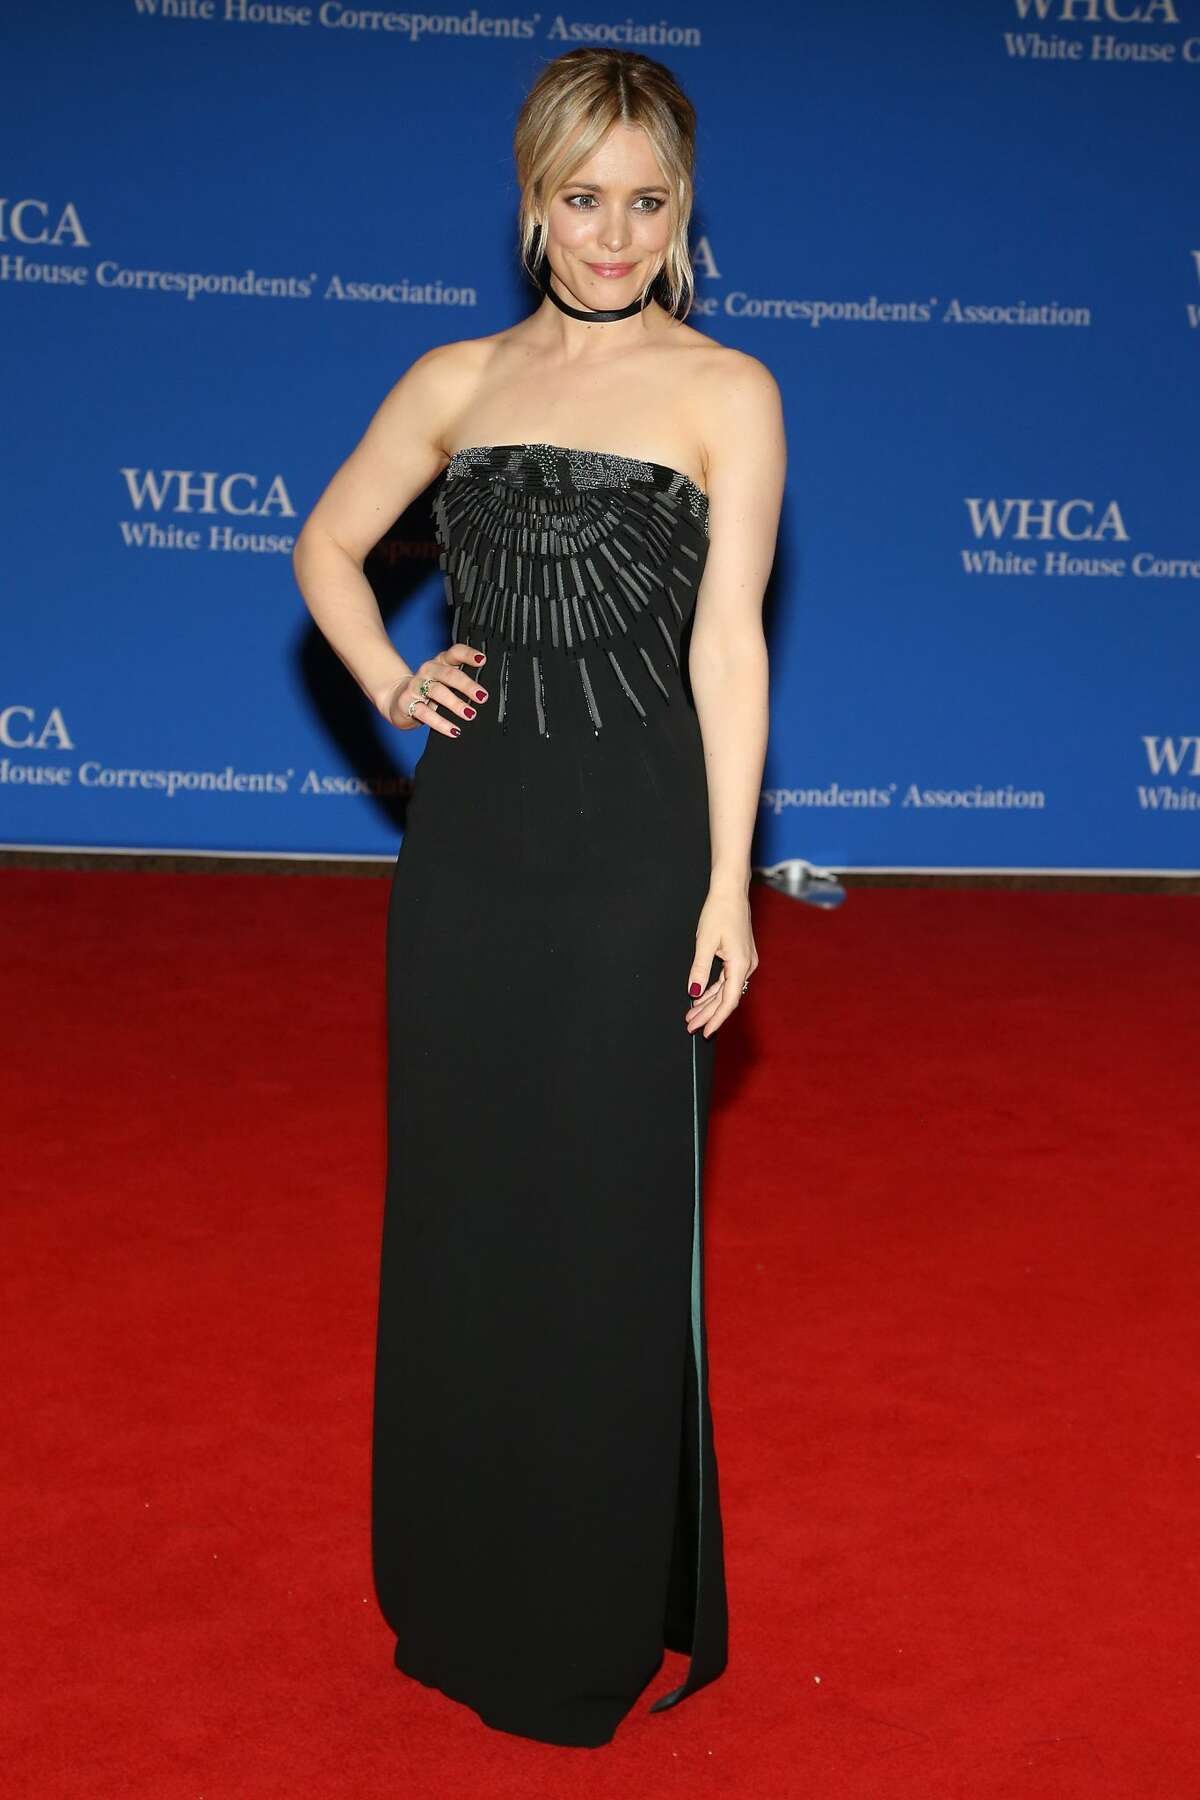 Actress Rachel McAdams attends the 102nd White House Correspondents' Association Dinner on April 30, 2016 in Washington, DC.